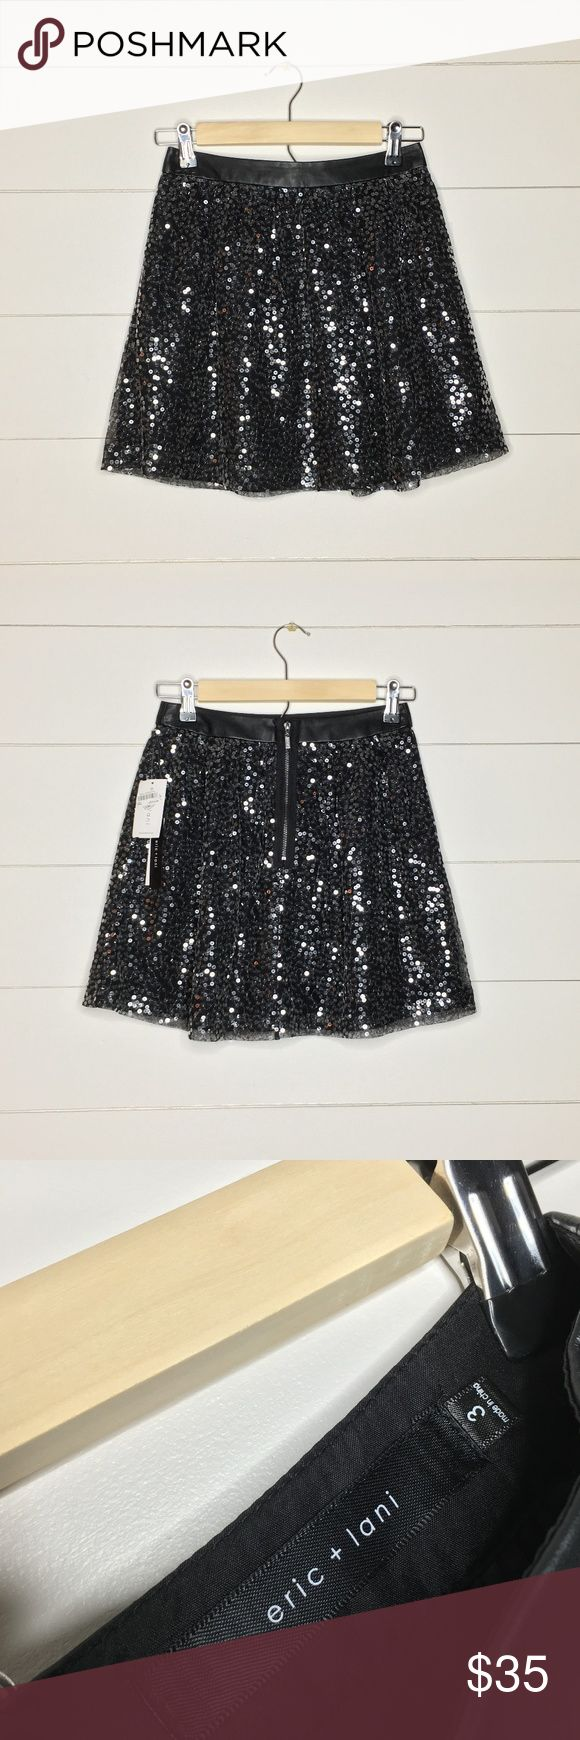 NWT Black Sequin CIRCLE SKIRT ** CURRENTLY ACCEPTING ALL OFFERS!  NWT eric + lani black sequin circle skirt! This skirt is on the shorter side with a flattering zip-up waistband and is super cute for parties or nights out. eric + lani Skirts Circle & Skater